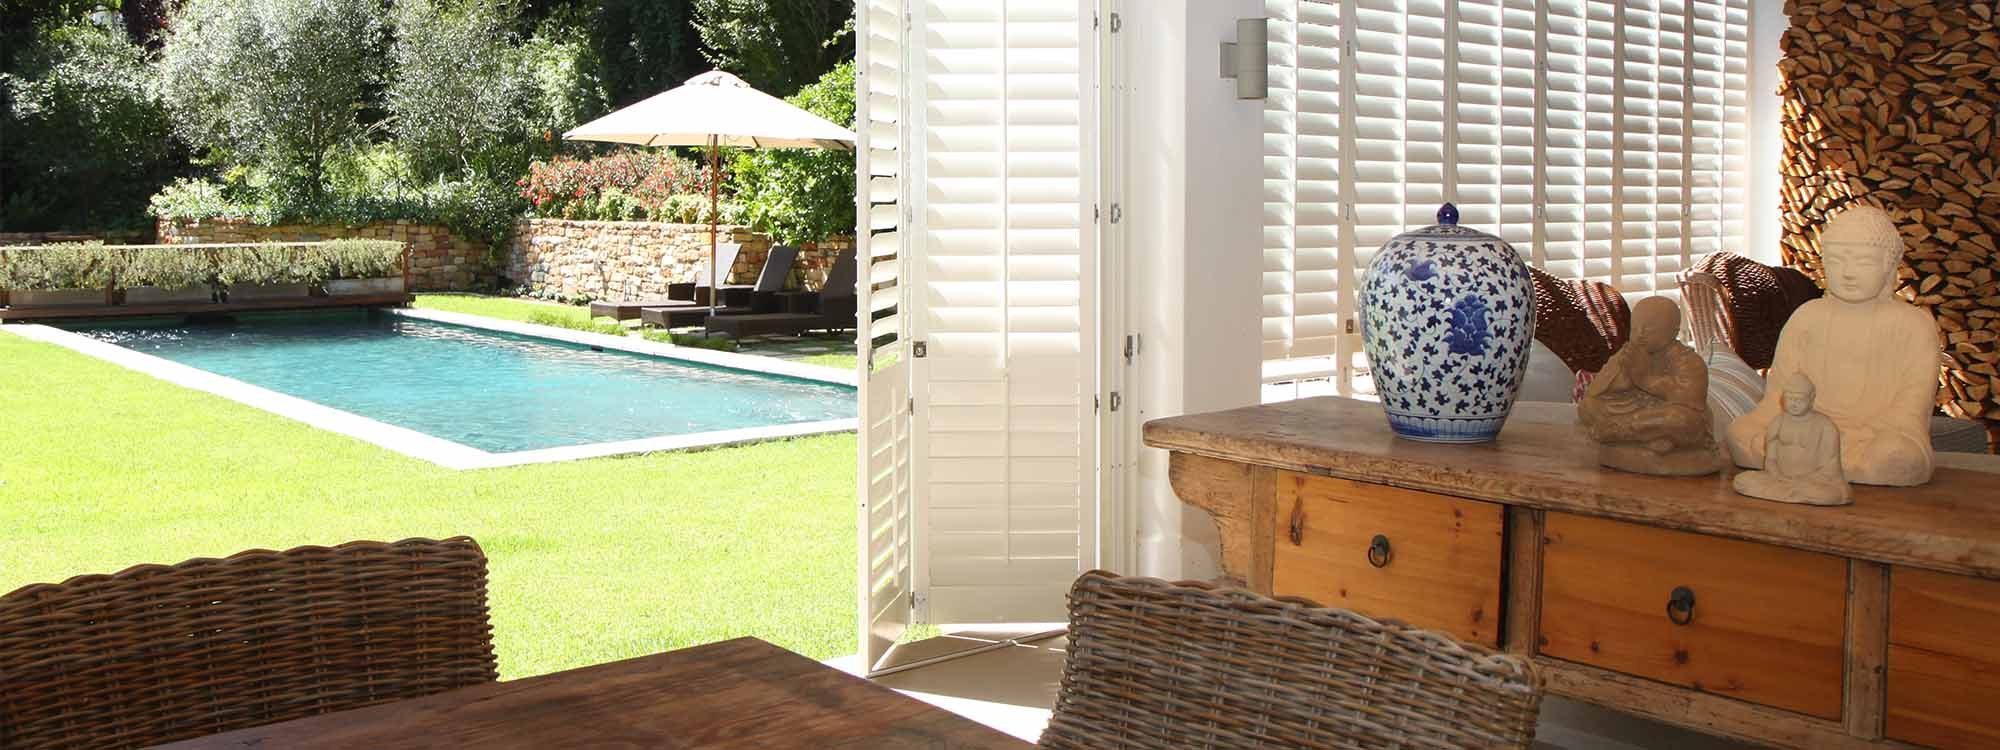 Decowood-shutters-patio-pool-view-summer